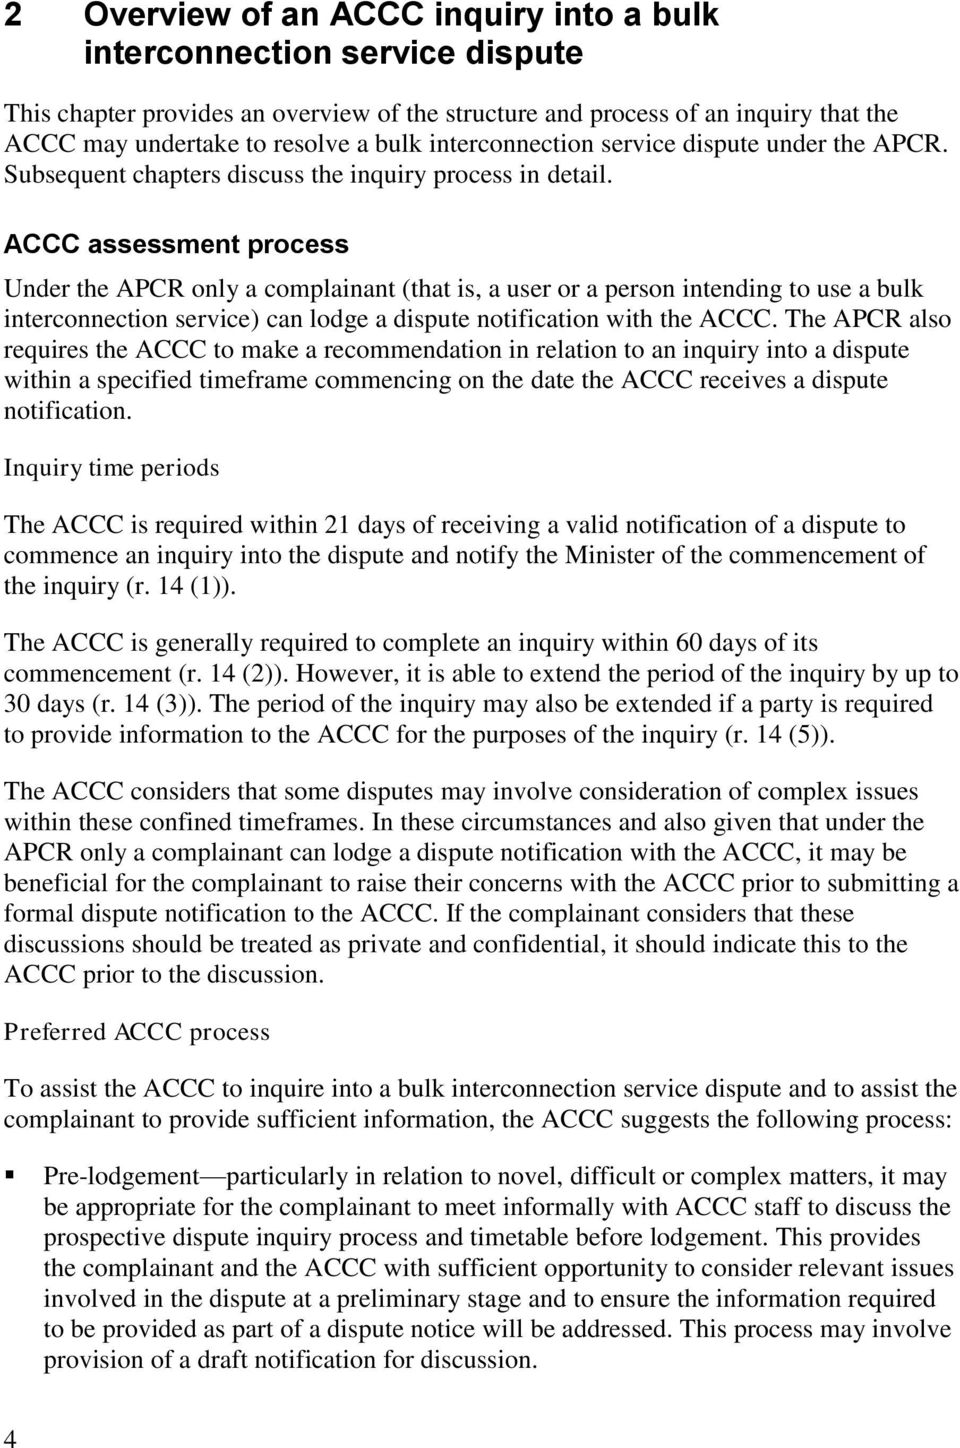 ACCC assessment process Under the APCR only a complainant (that is, a user or a person intending to use a bulk interconnection service) can lodge a dispute notification with the ACCC.